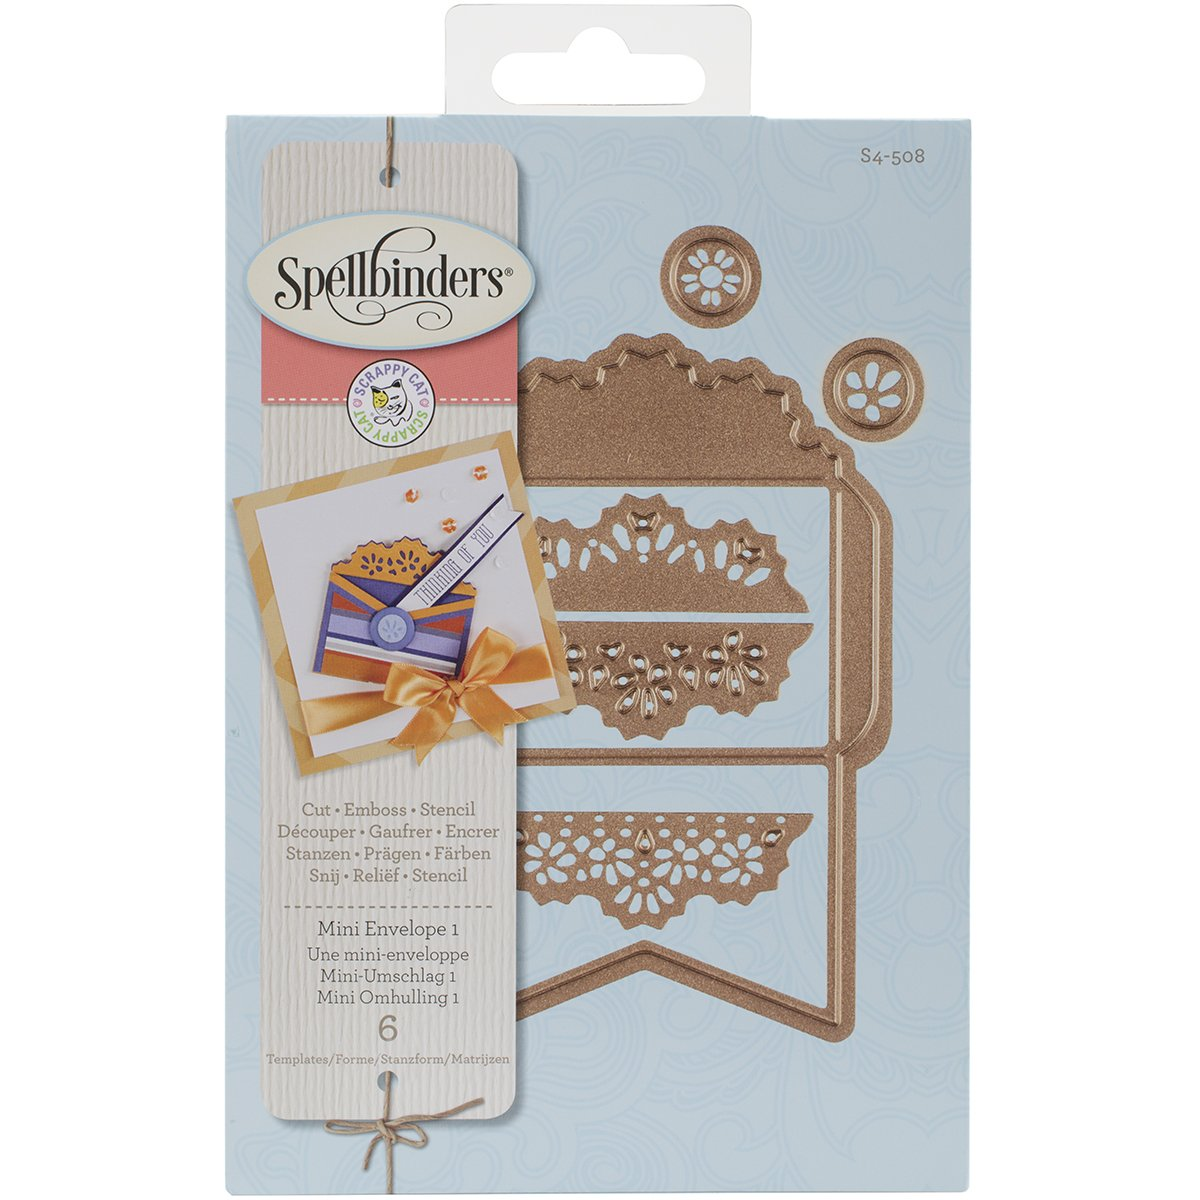 Spellbinders S4-508 Envelope One for Scrapbooking, Mini